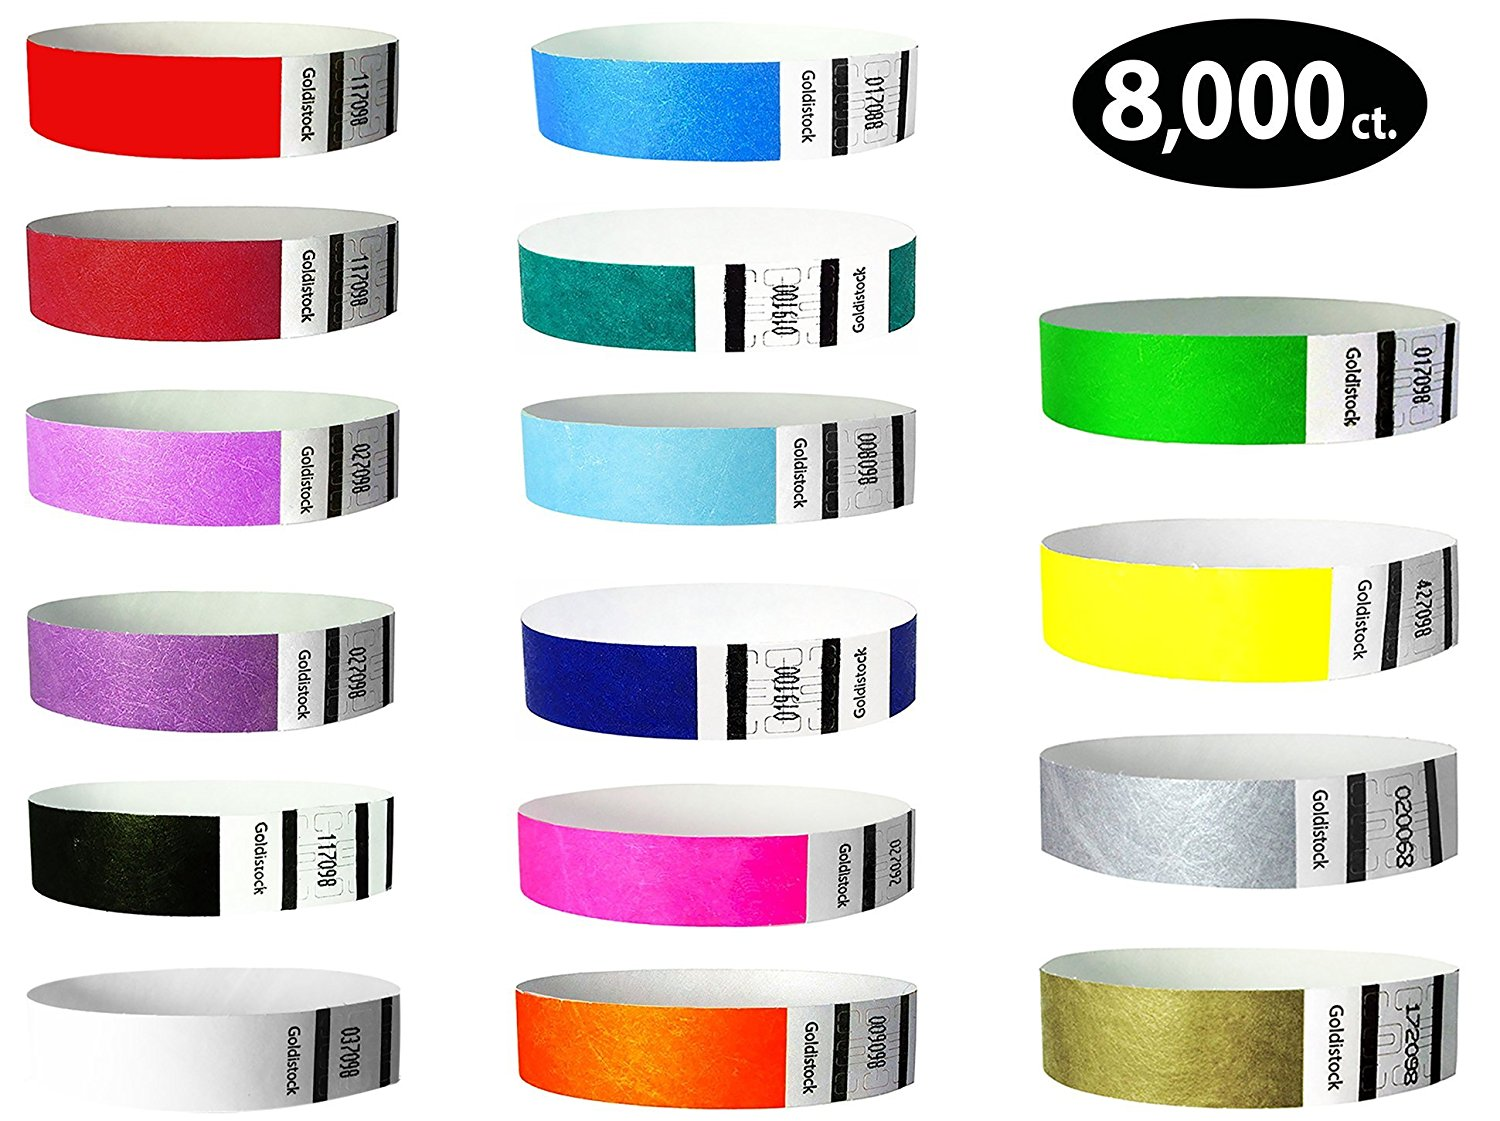 "Goldistock 3/4"" Tyvek Wristbands Max Value 16 Color Variey Pack- 8,000 Ct. (500/EA)- Green, Blue (2 Colors), Yellow, Red(2), Orange, Pink, Purple(2), Aqua, Teal, Metallic Gold & Silver, Black, White"